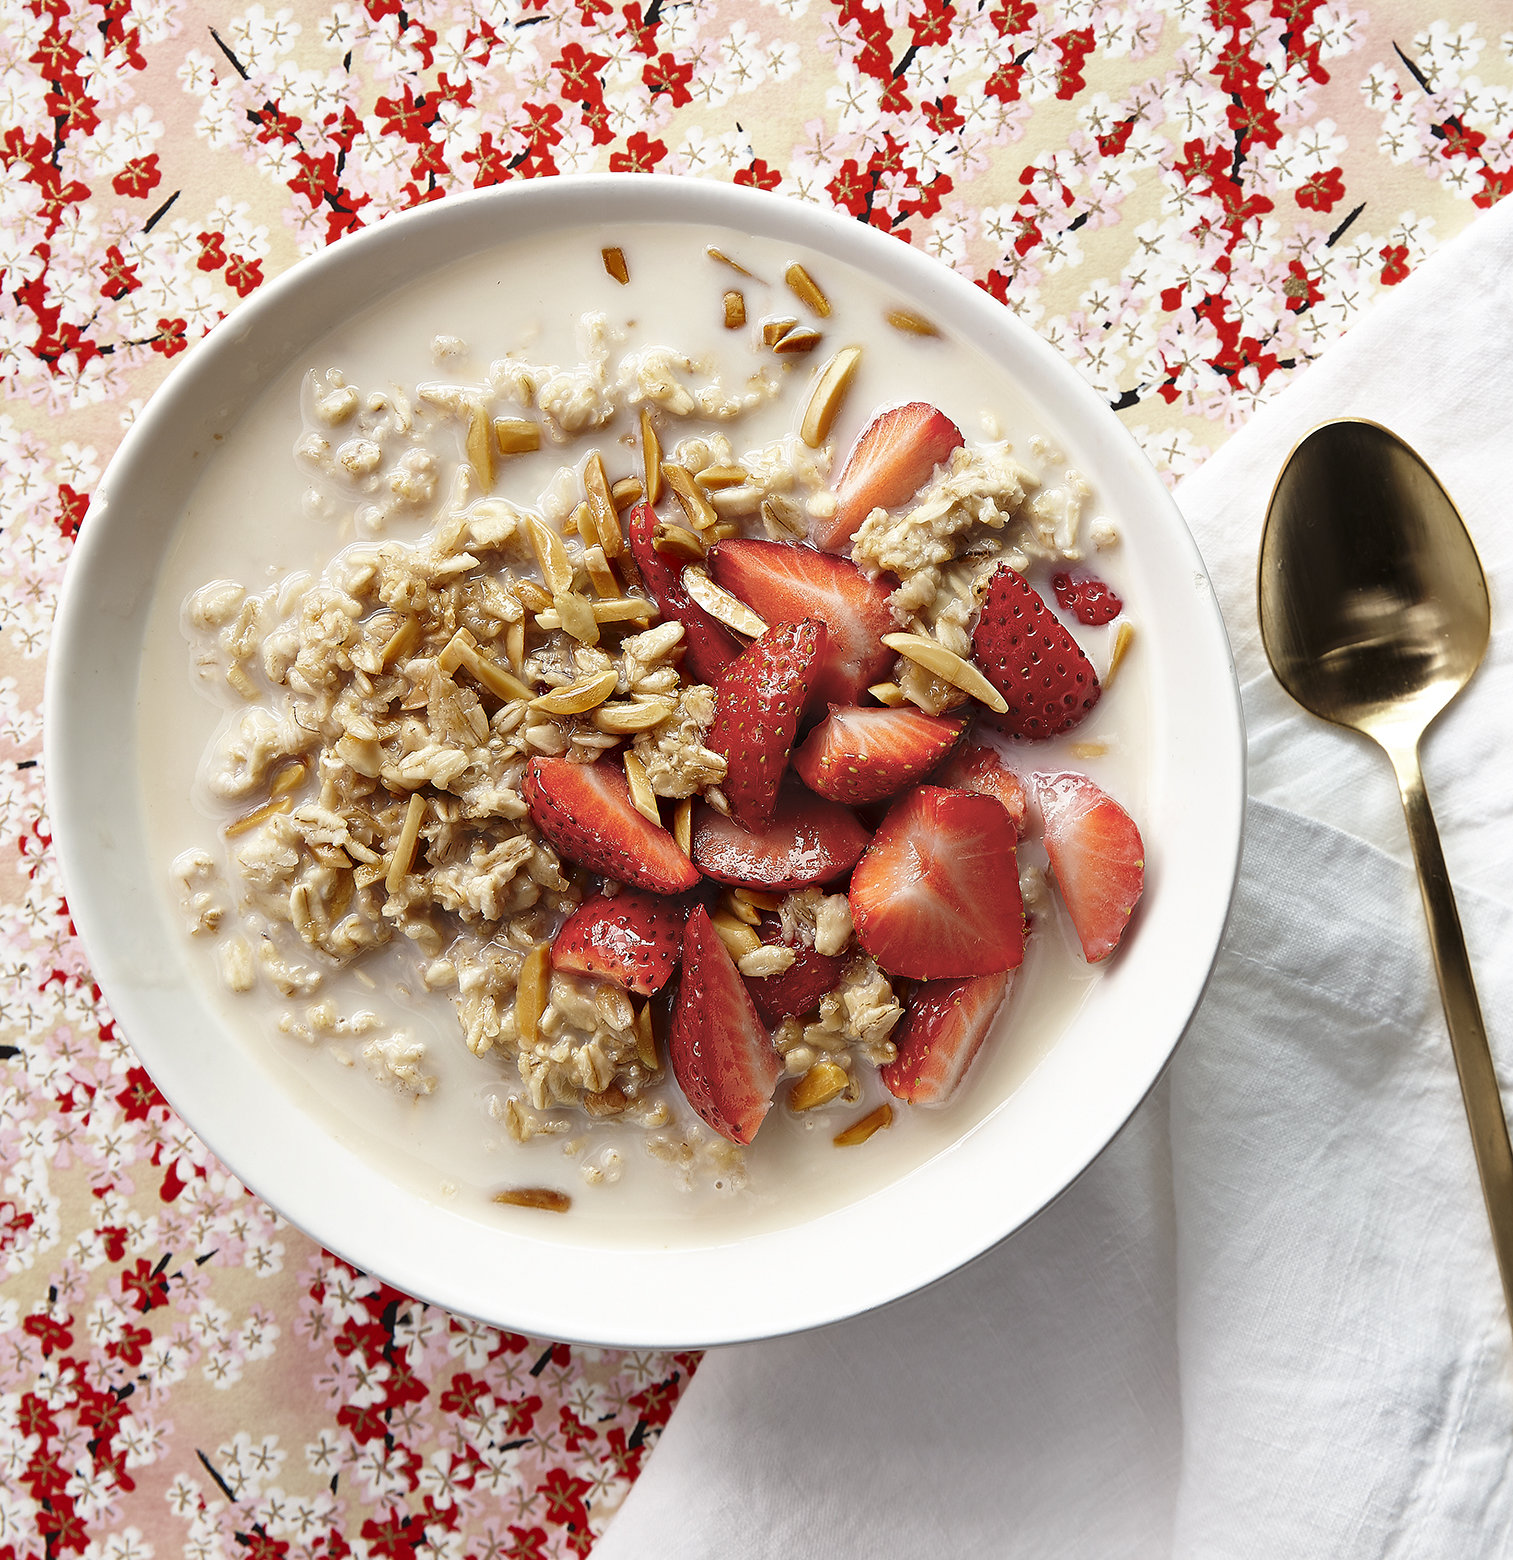 15 Easy Breakfasts for Back-to-School